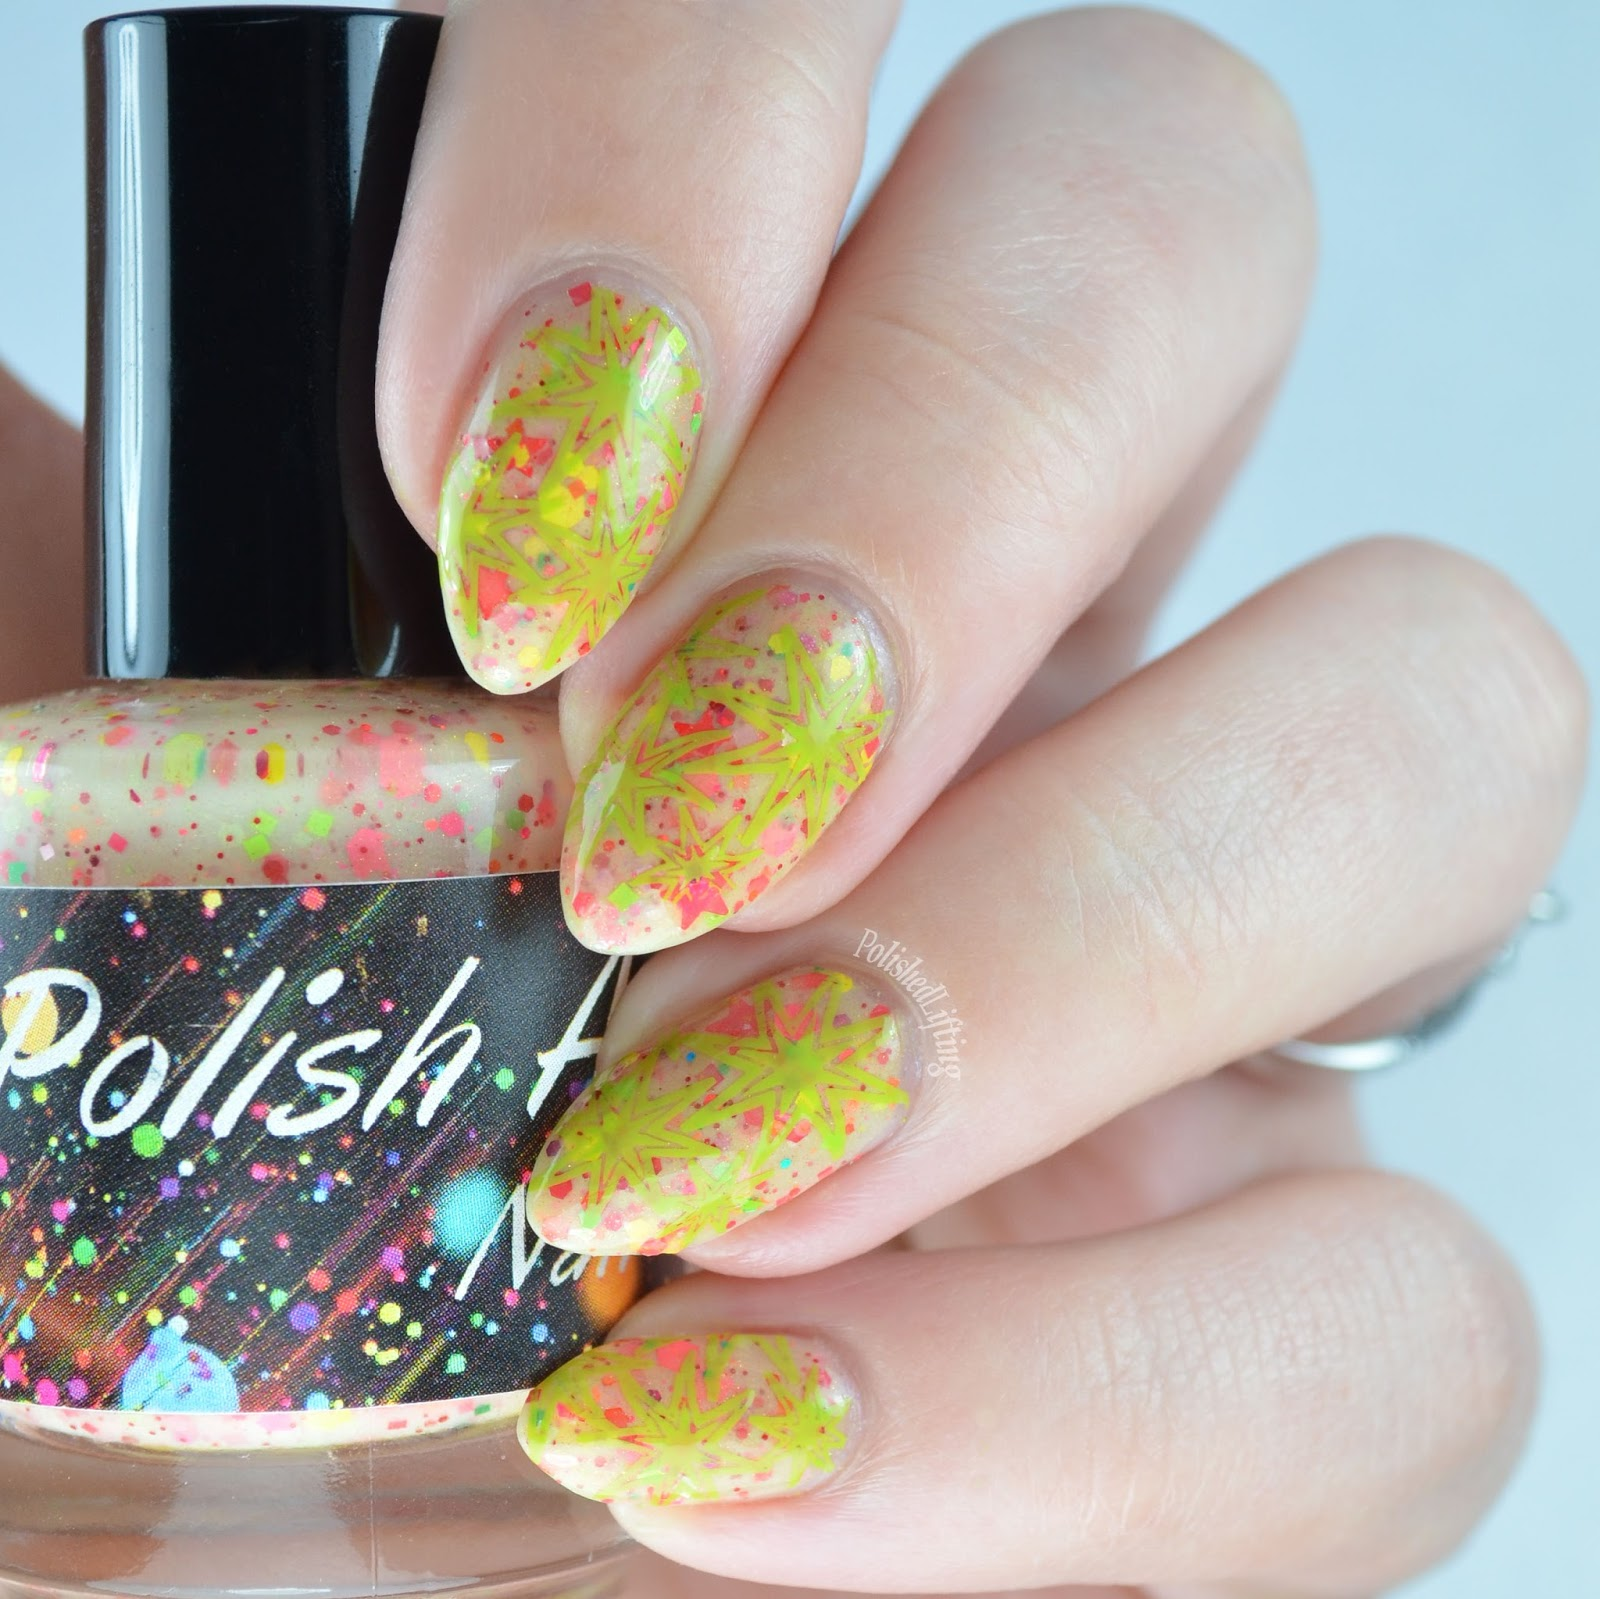 Polished Lifting: Retro Nail Art Featuring Polish Addict Nail Color ...